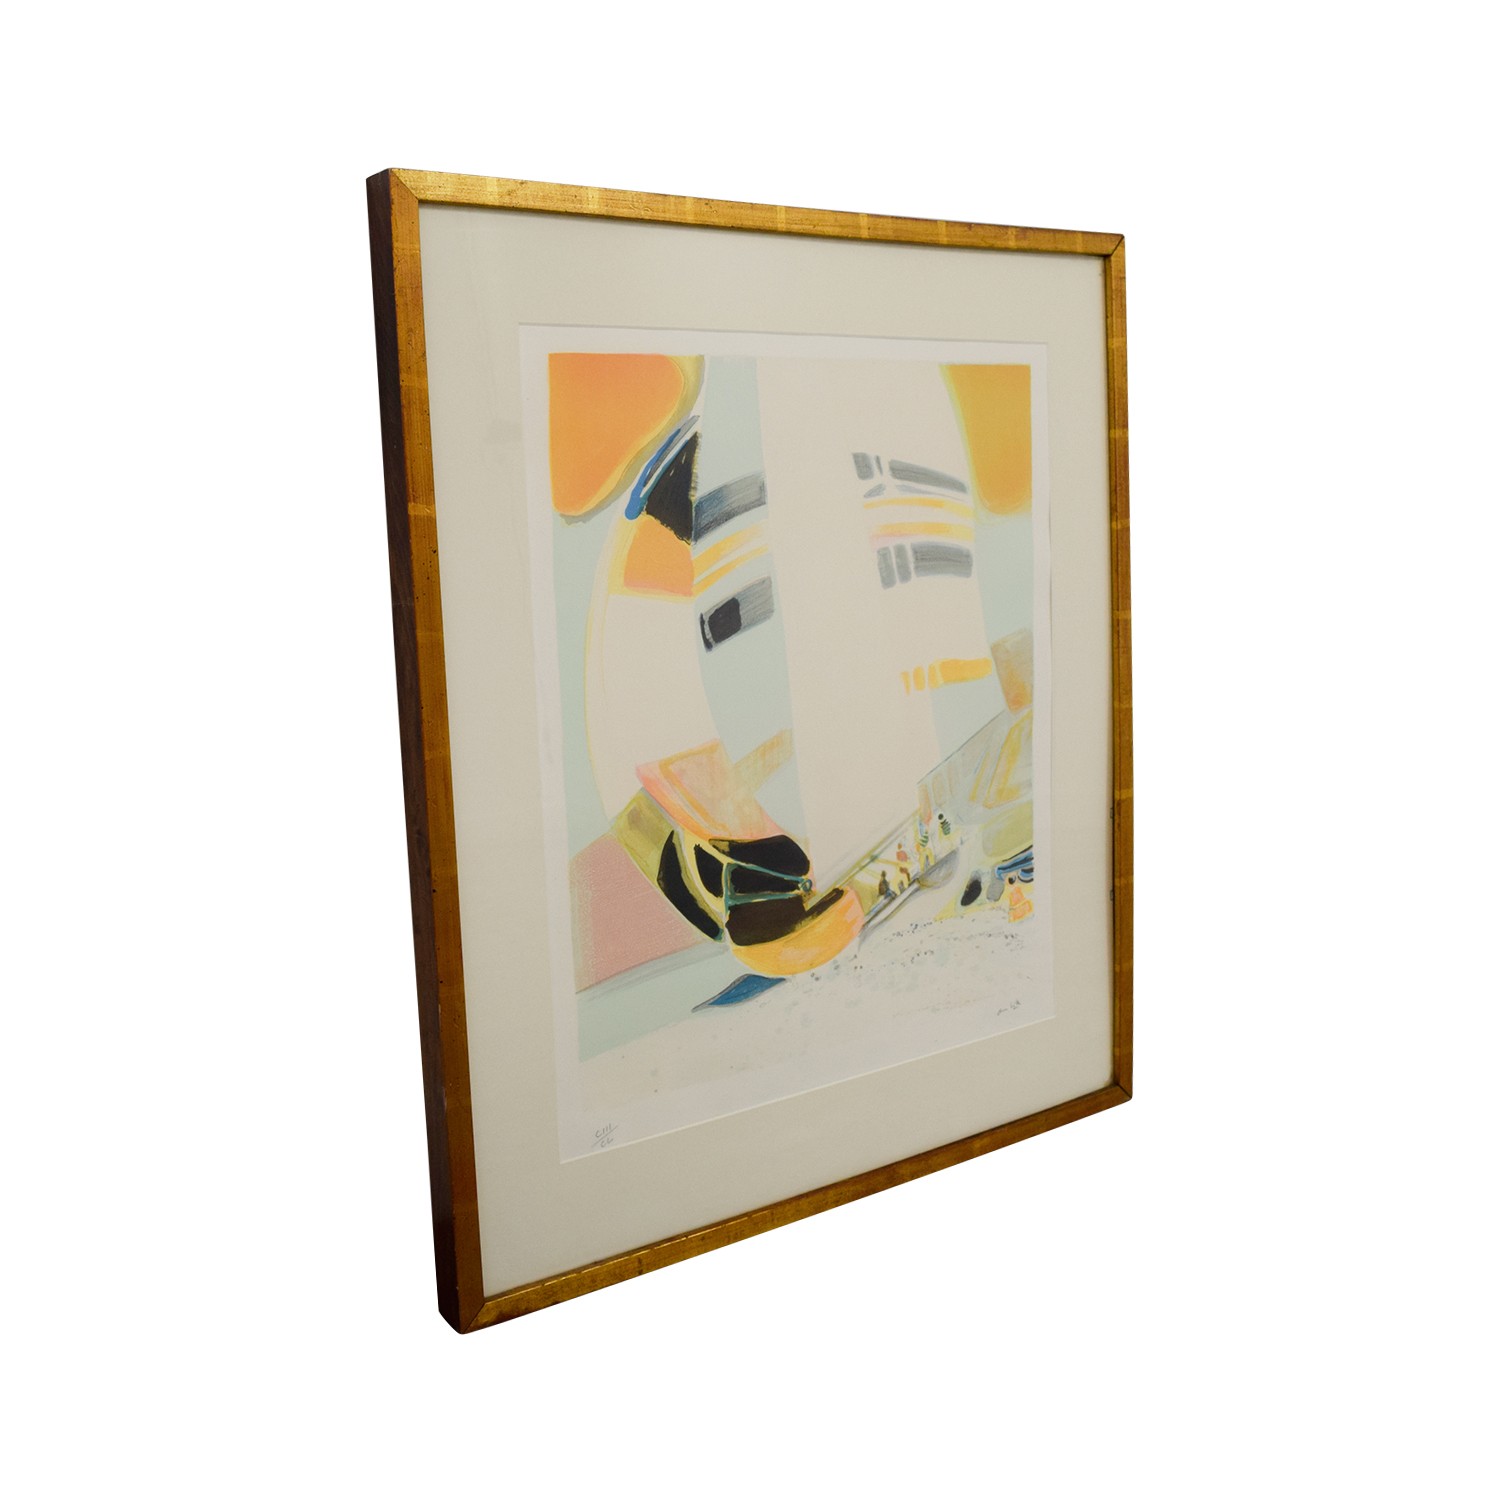 Framed Amhil Sailboat Lithograph